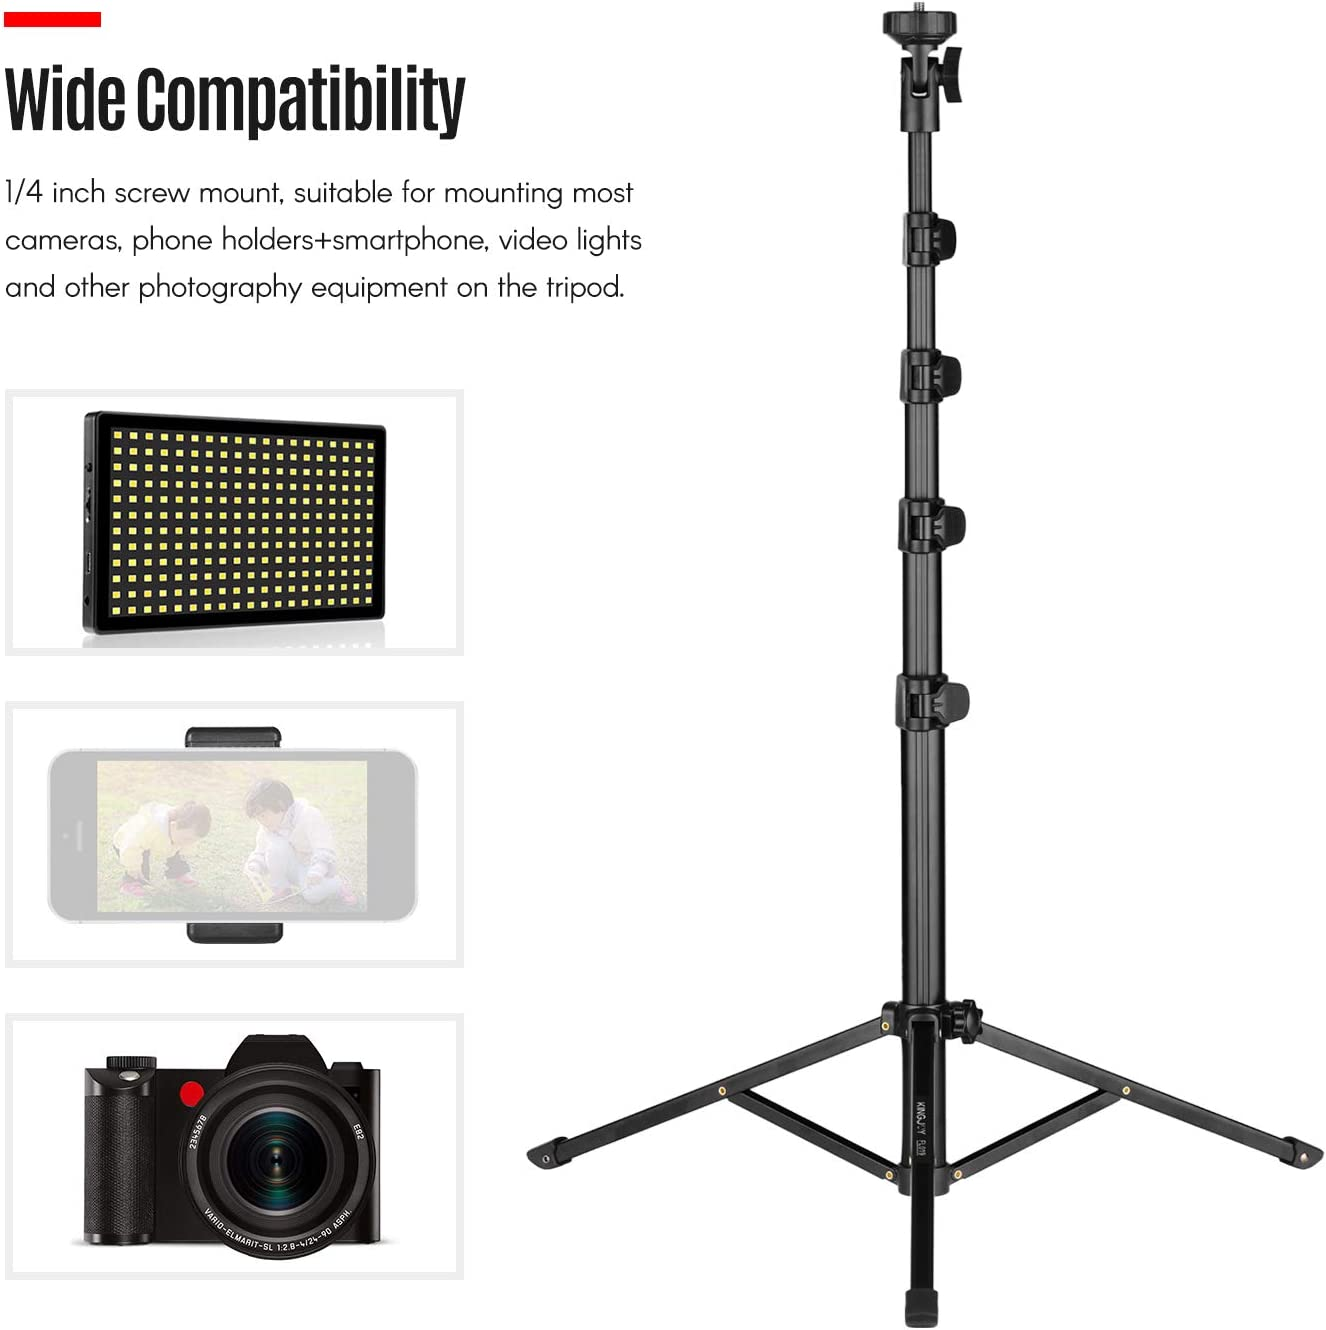 Load 5kg Docooler FL019 Multi-Functional Photography Video Tripod Mobile Live Video Broadcasting Bracket Aluminum Alloy Material 1//4 Inch Screw Mount for Camera Smartphone Video Light Max